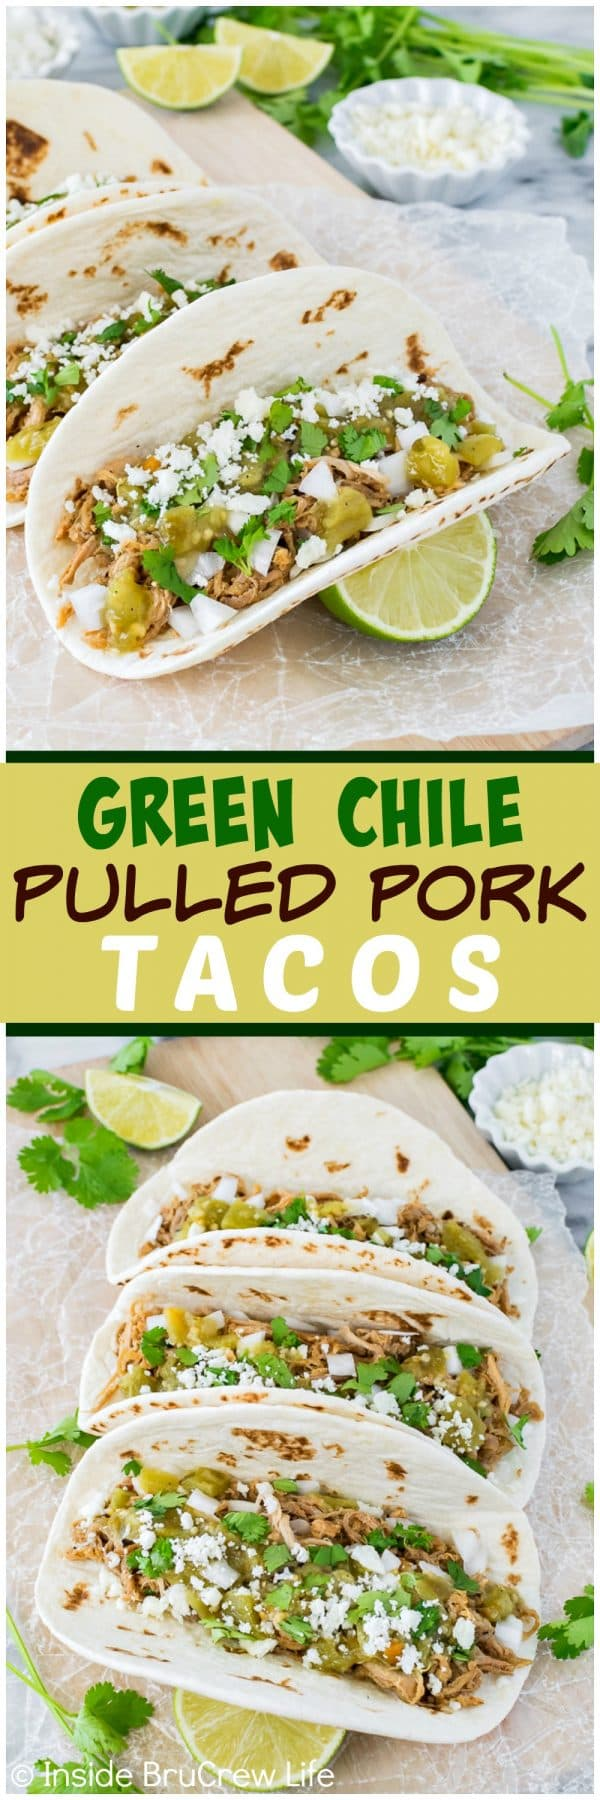 Green Chile Pulled Pork Tacos - tortillas loaded with pork, cheese, and salsa can be on your dinner table in under 30 minutes. Great recipe for those busy days and nights!